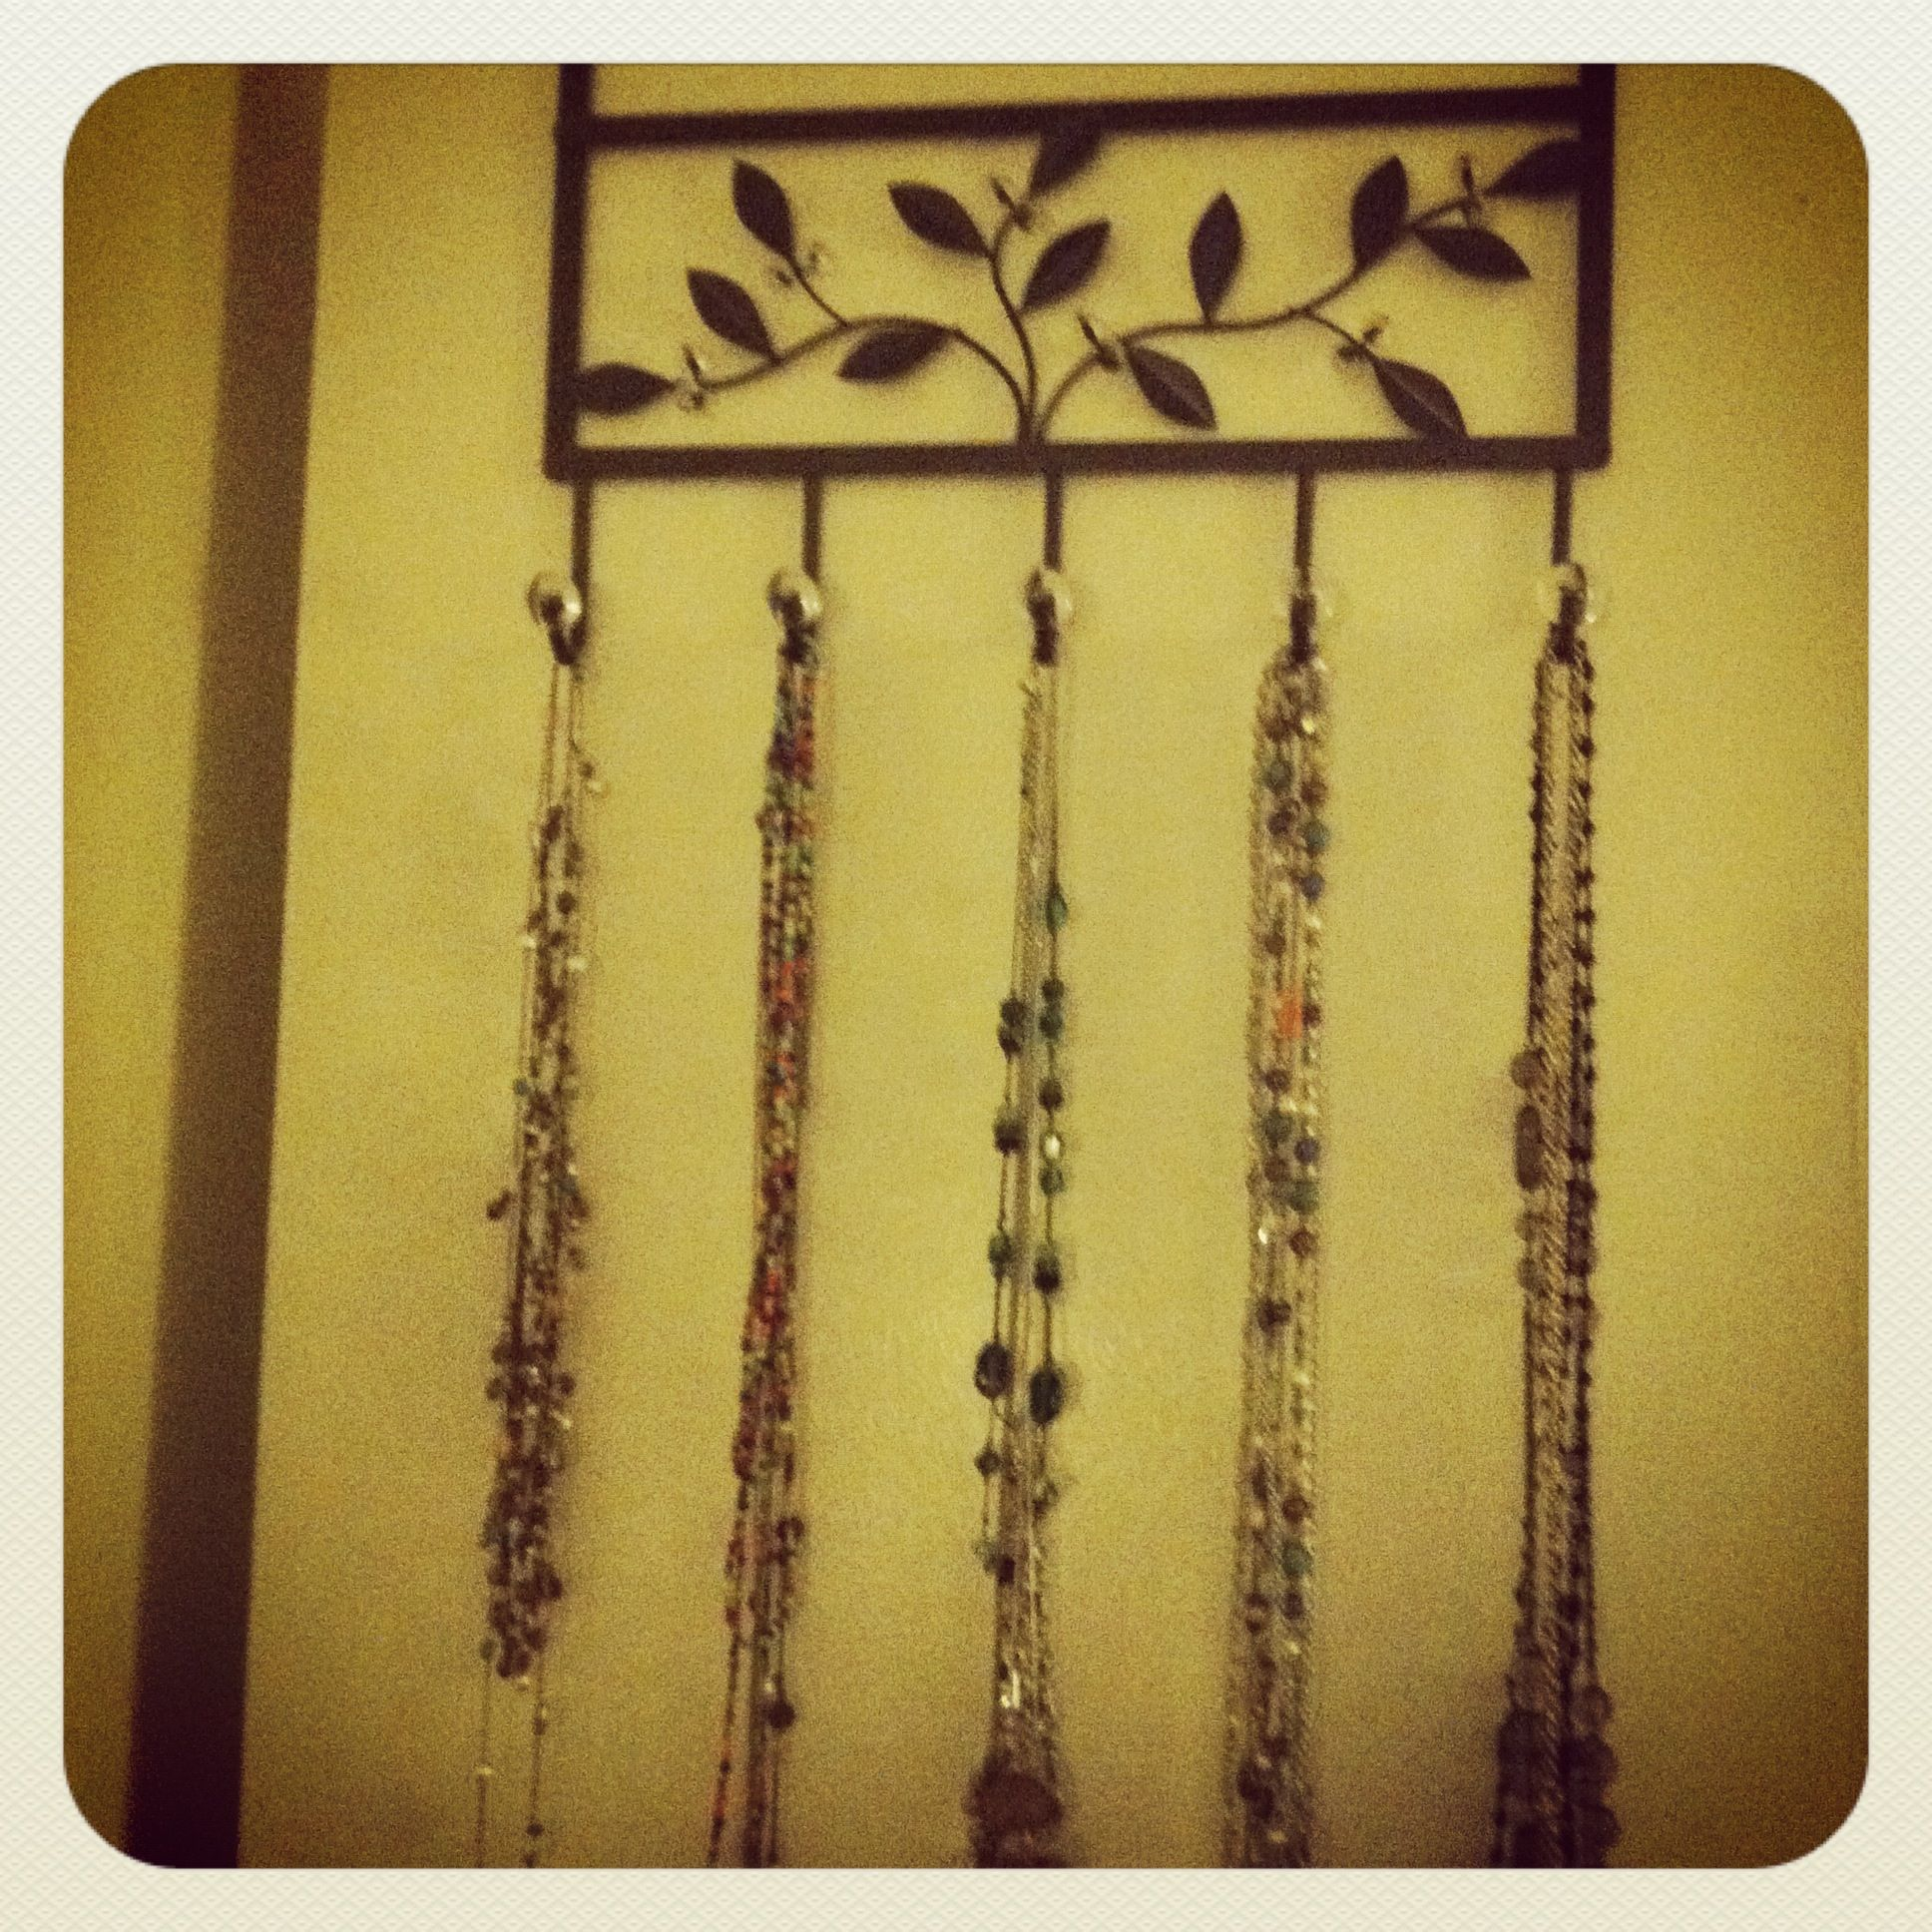 Smallspace Decor: Hang Up Your Long Necklaces With An Over The Door Towel